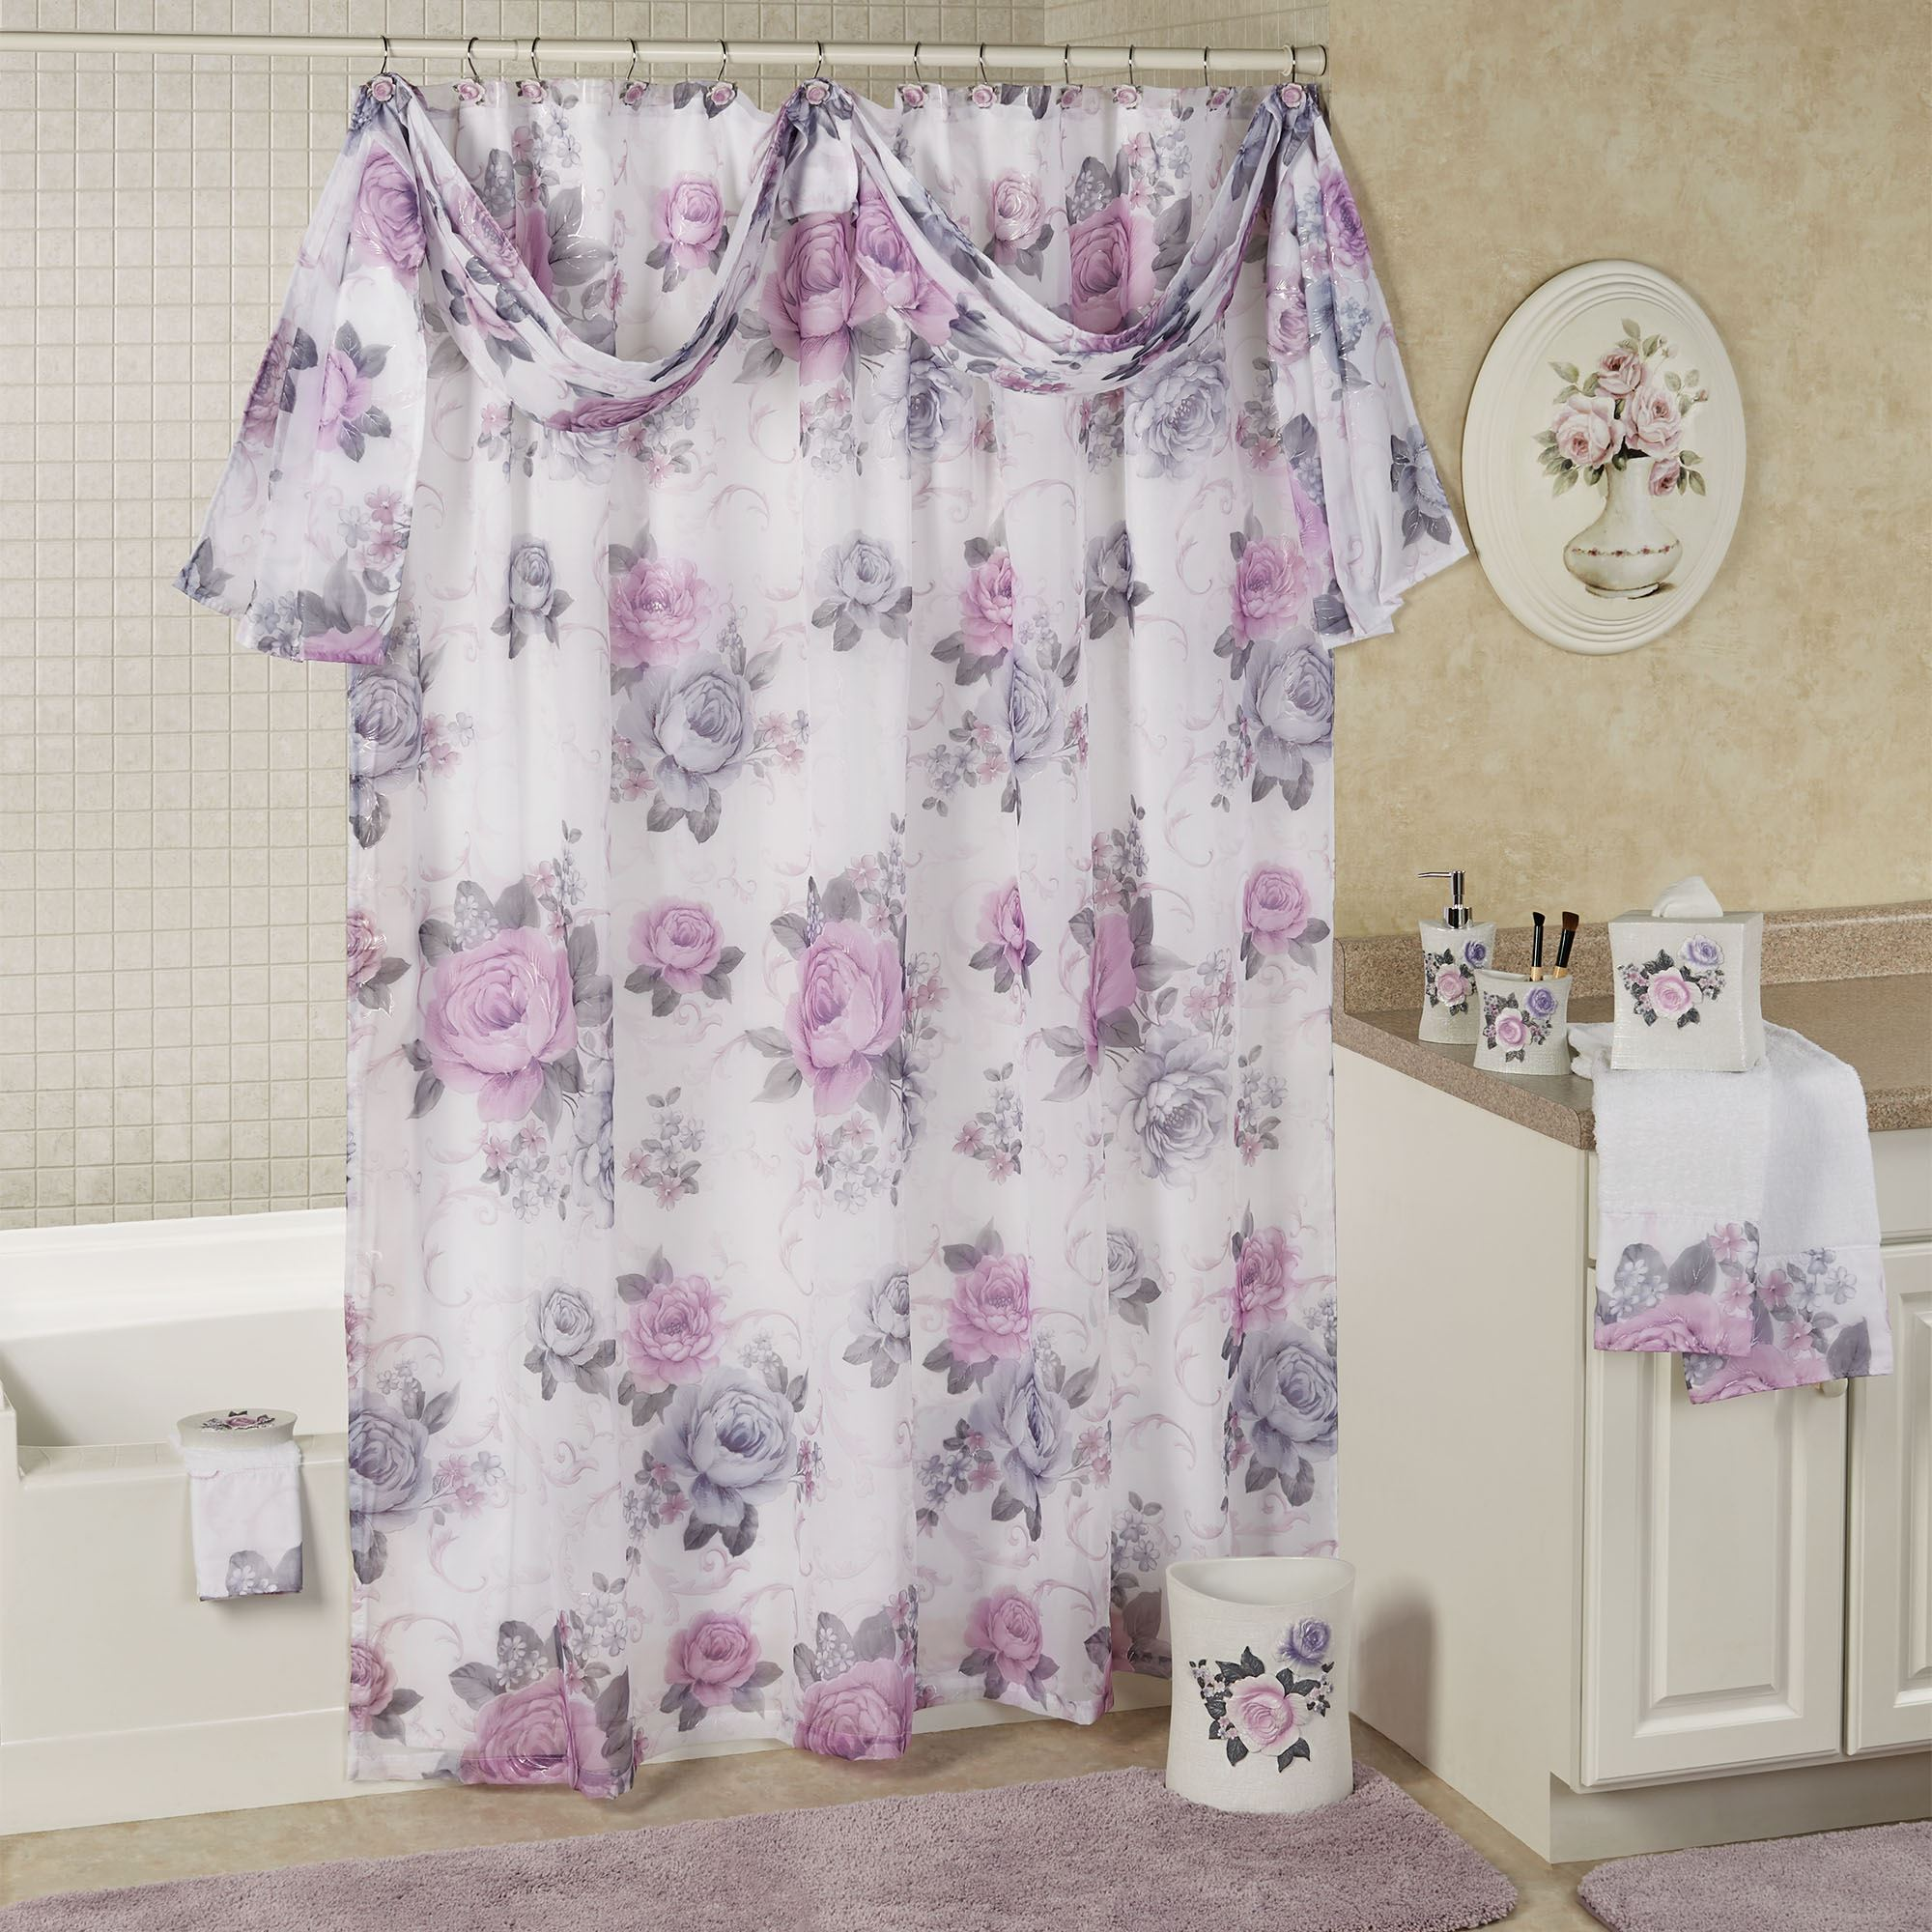 Michelle Semi Sheer Floral Shower Curtain